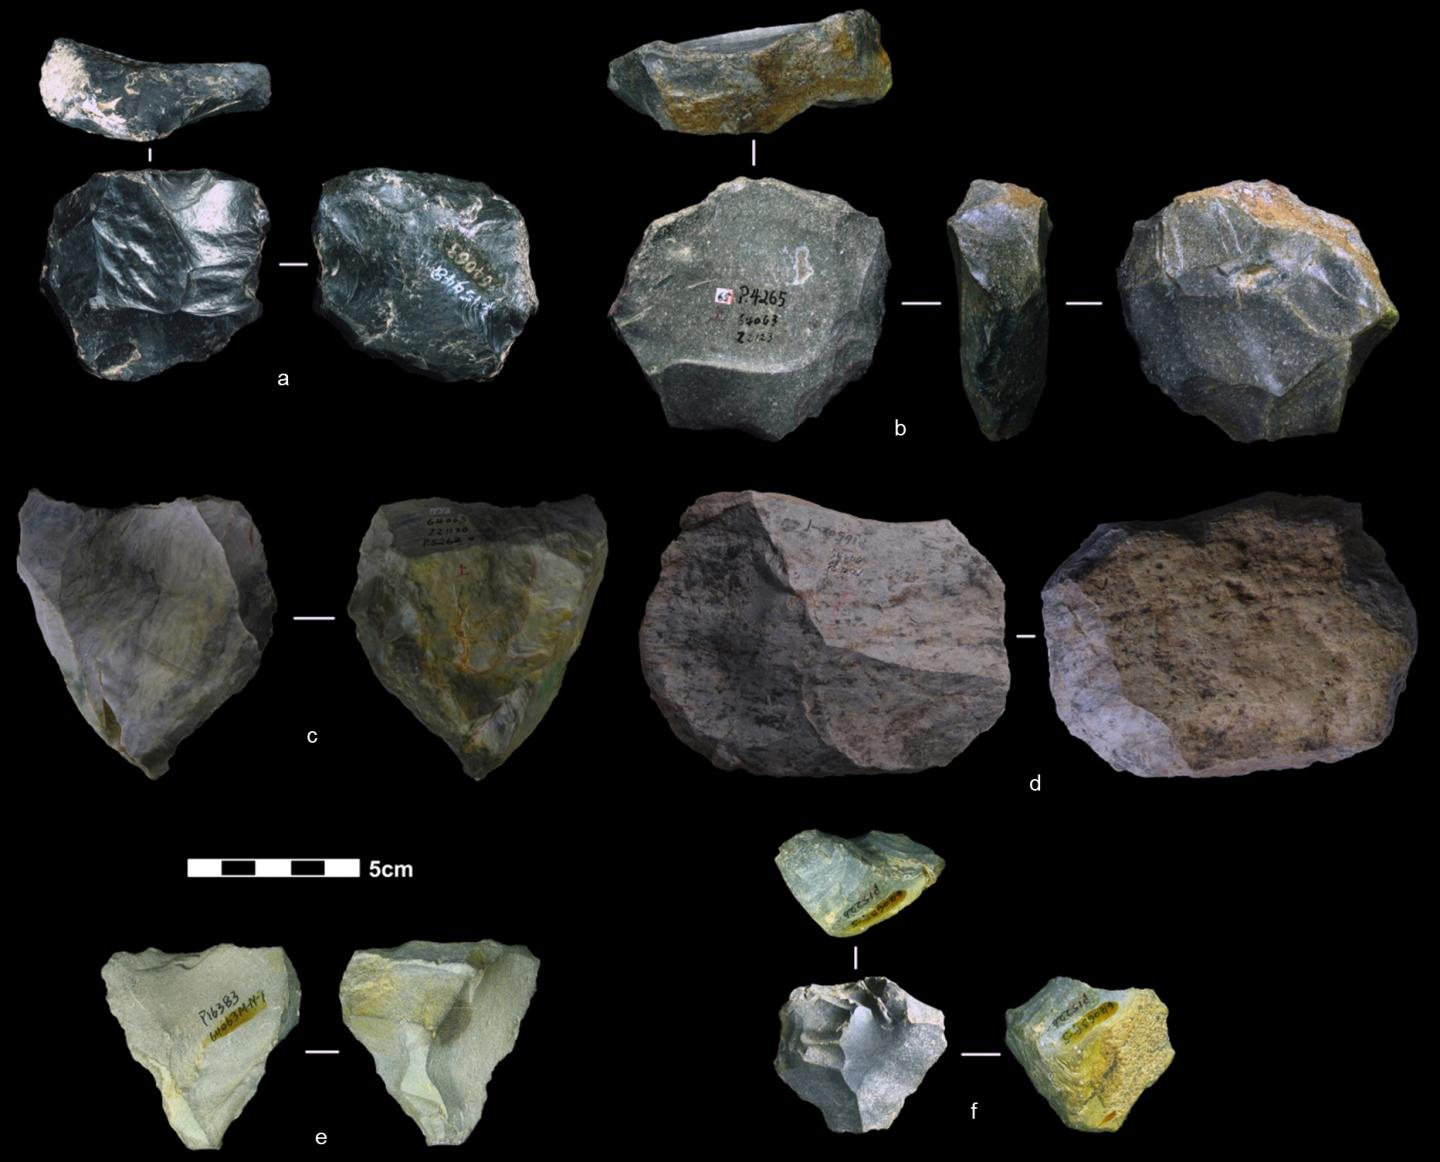 Levallois Artifacts Found in South China Cave